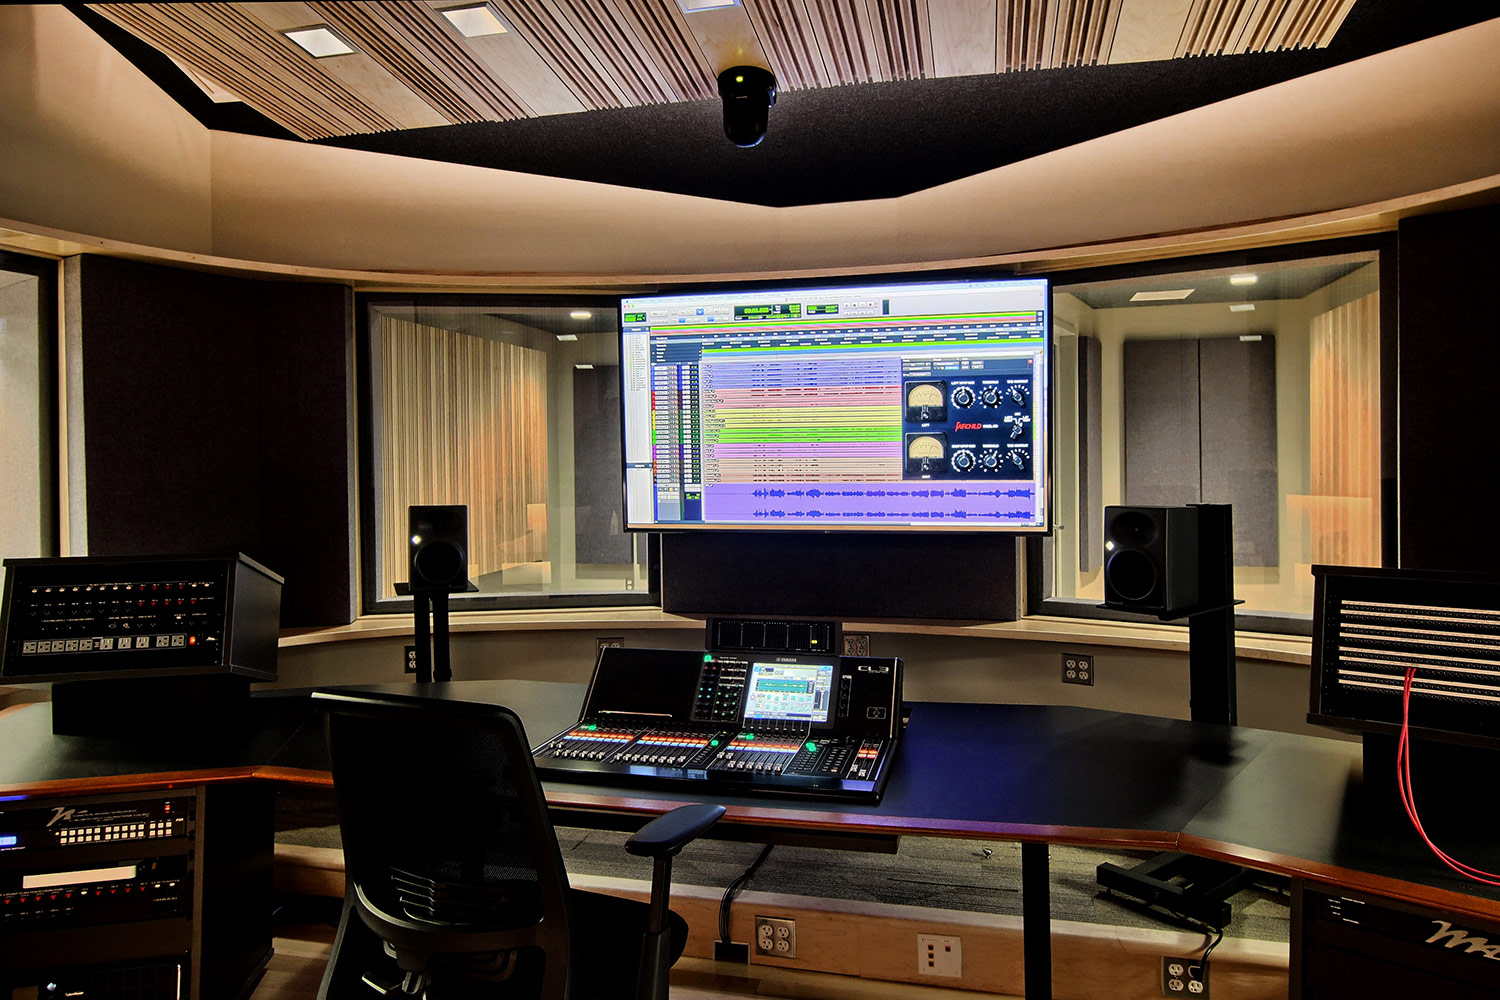 Interlochen has recently completed their new complex. A key component of the new complex is a state-of-the-art recording/teaching studio complex developed by WSDG. Lower Level Studio.